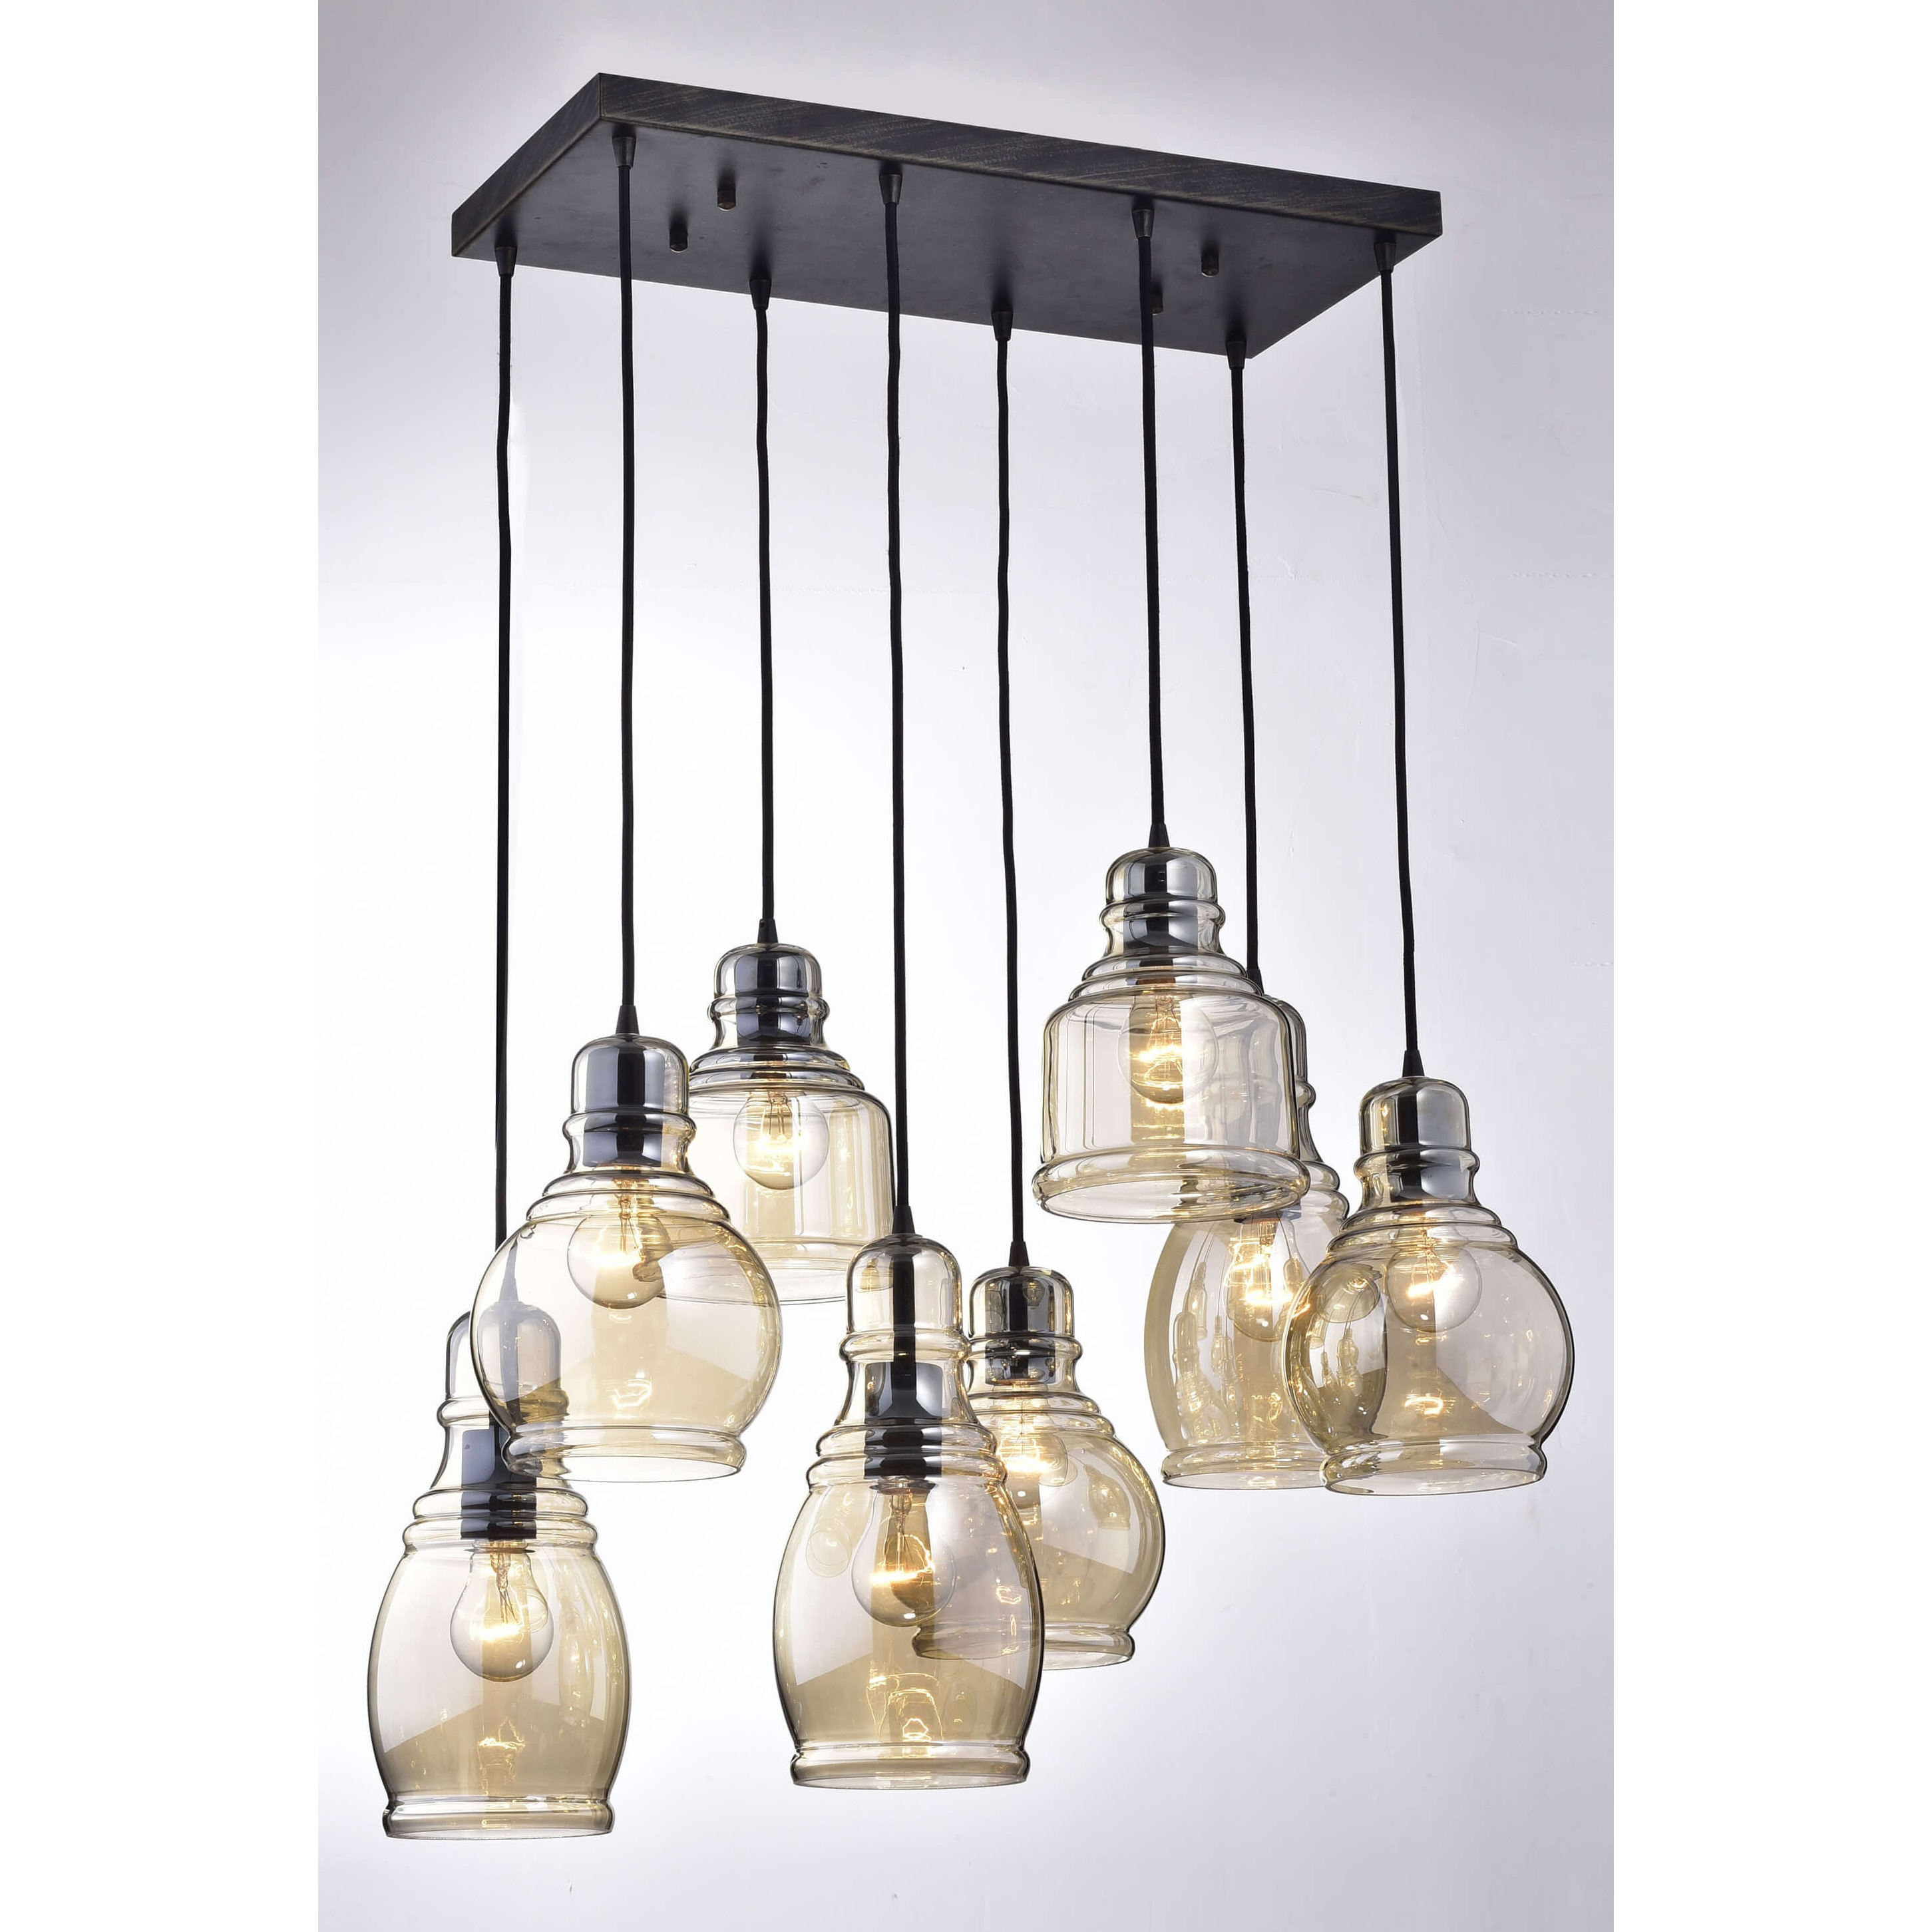 Strick Bolton Yinka Antique Gl Pendant Lights On Free Shipping Today 20173268